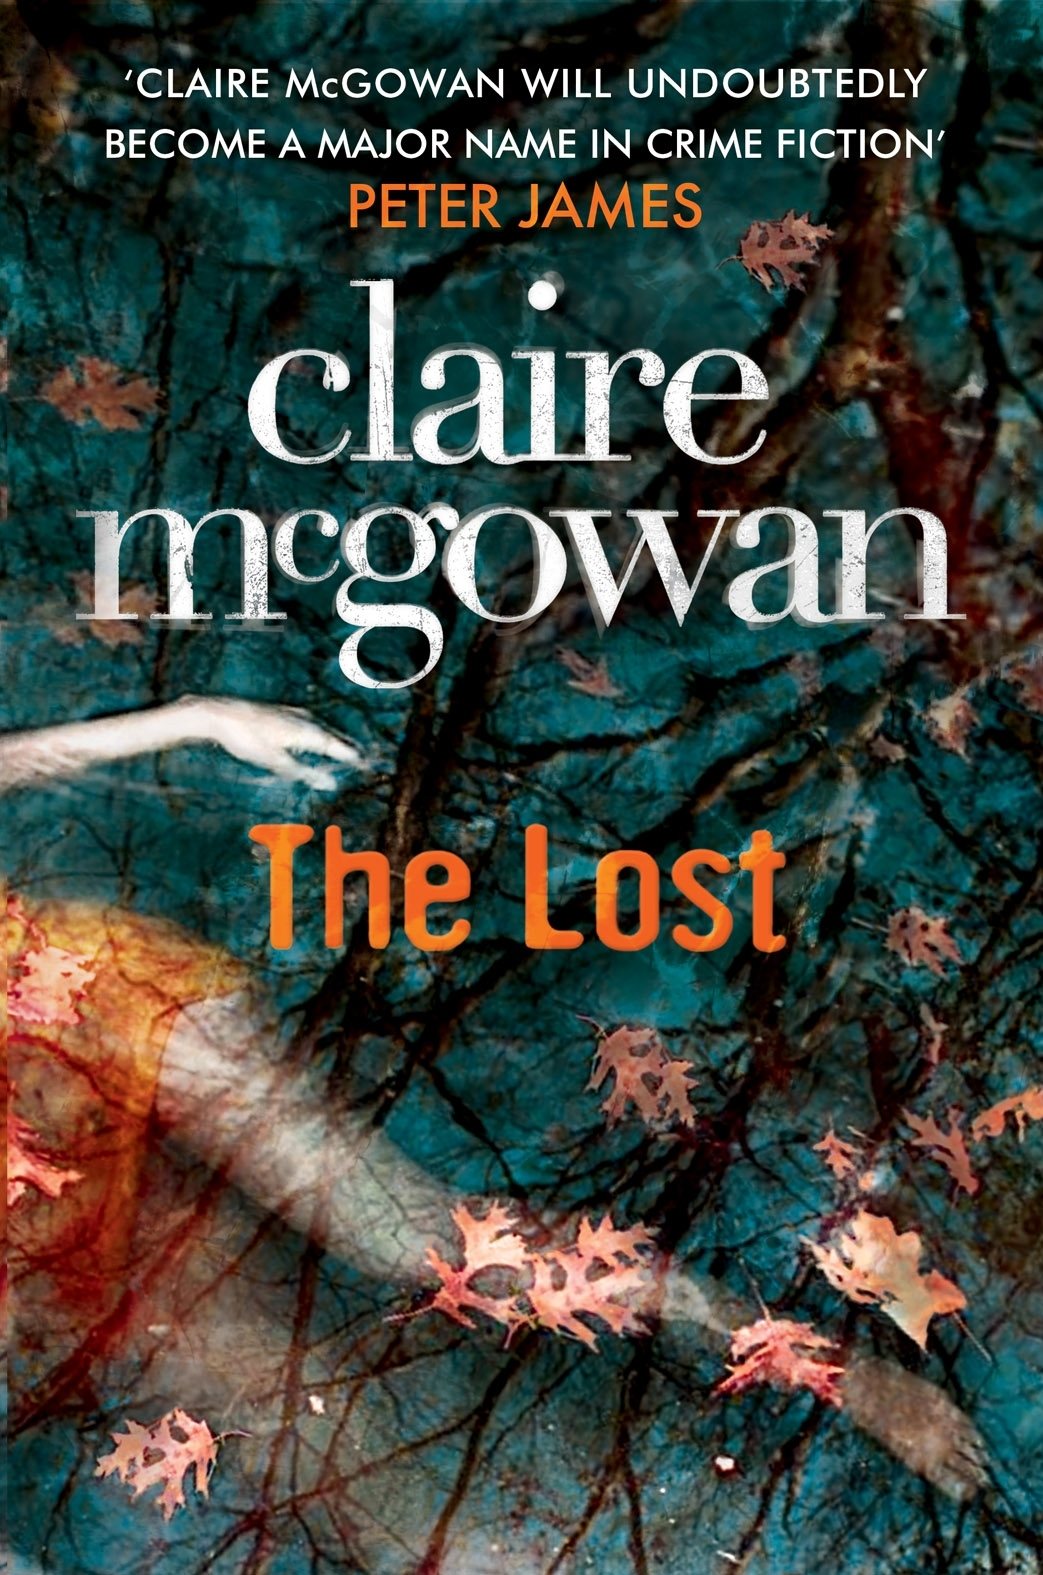 MCGOWAN - THE LOST UK cover.JPG